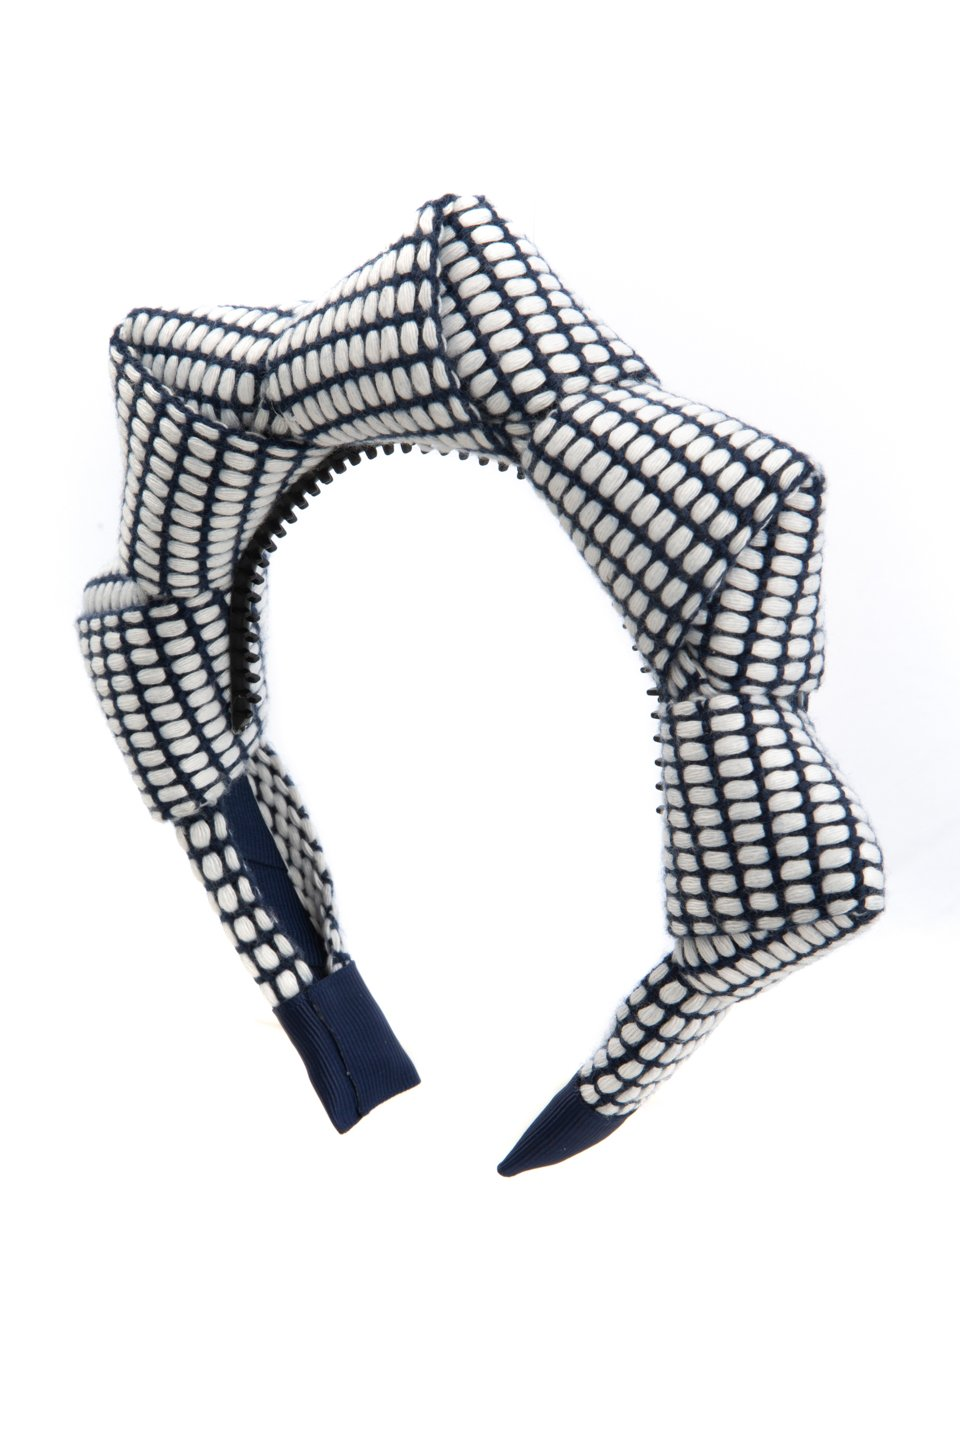 Mountain Queen Headband - Navy Grid - PROJECT 6, modest fashion